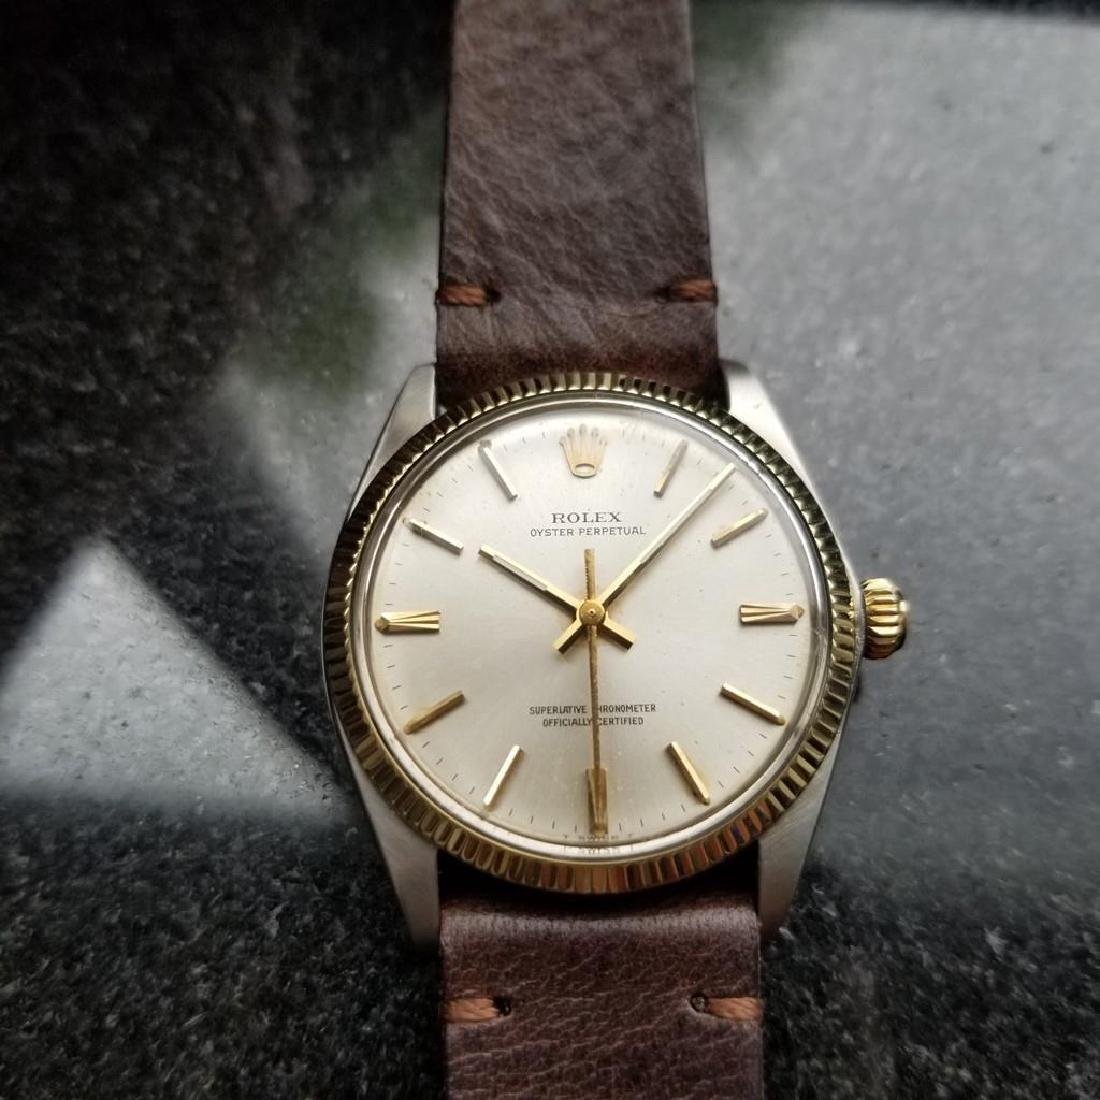 ROLEX Men's 18K Gold & SS Oyster Perpetual 1005 - 4